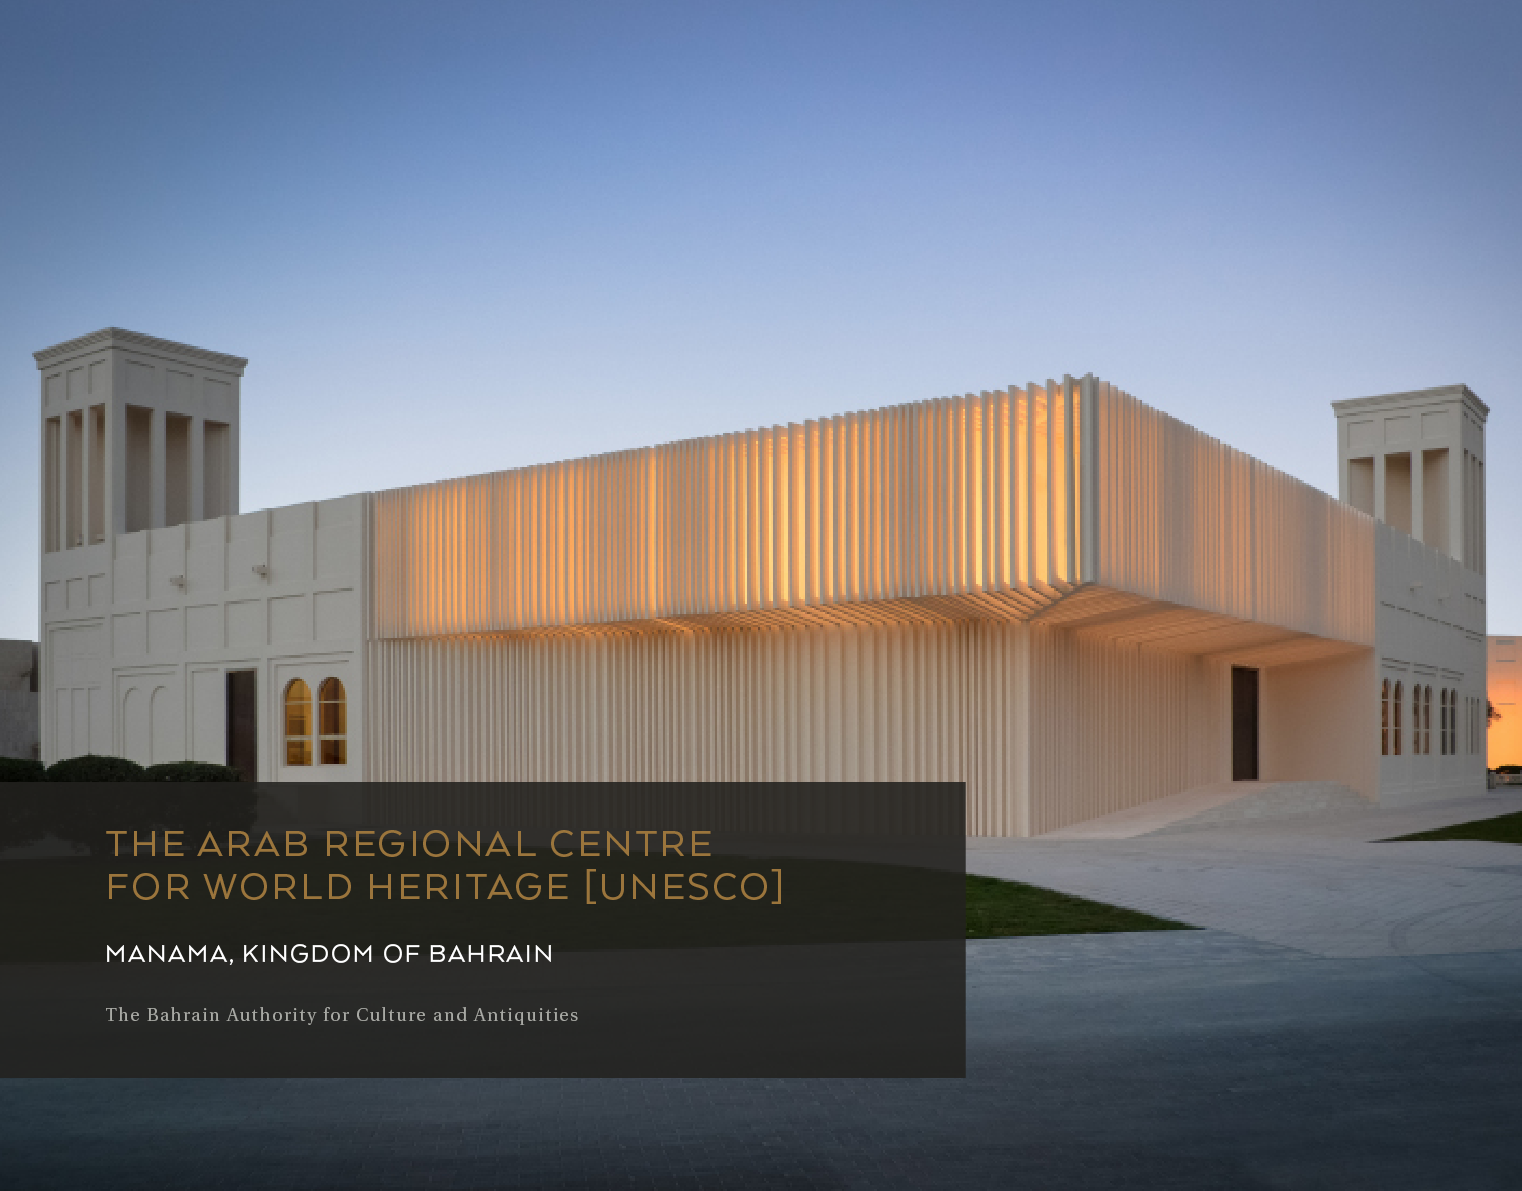 Arab Regional Centre for World Heritage (UNESCO)